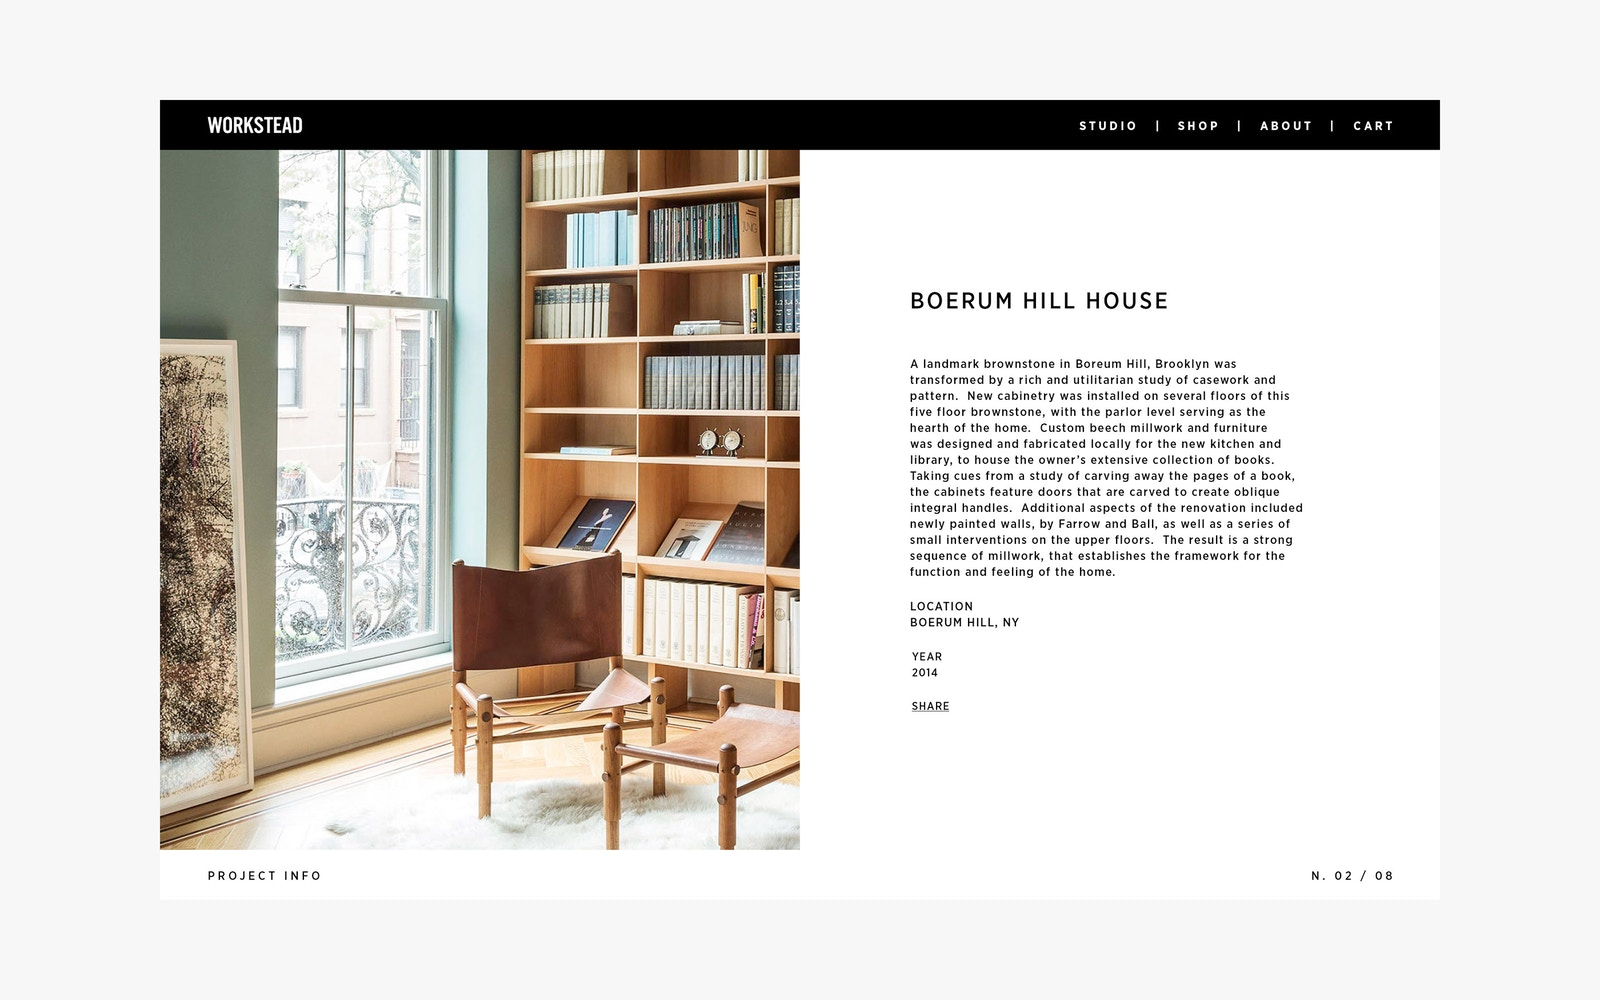 Web Design for Workstead Interior Design Firm